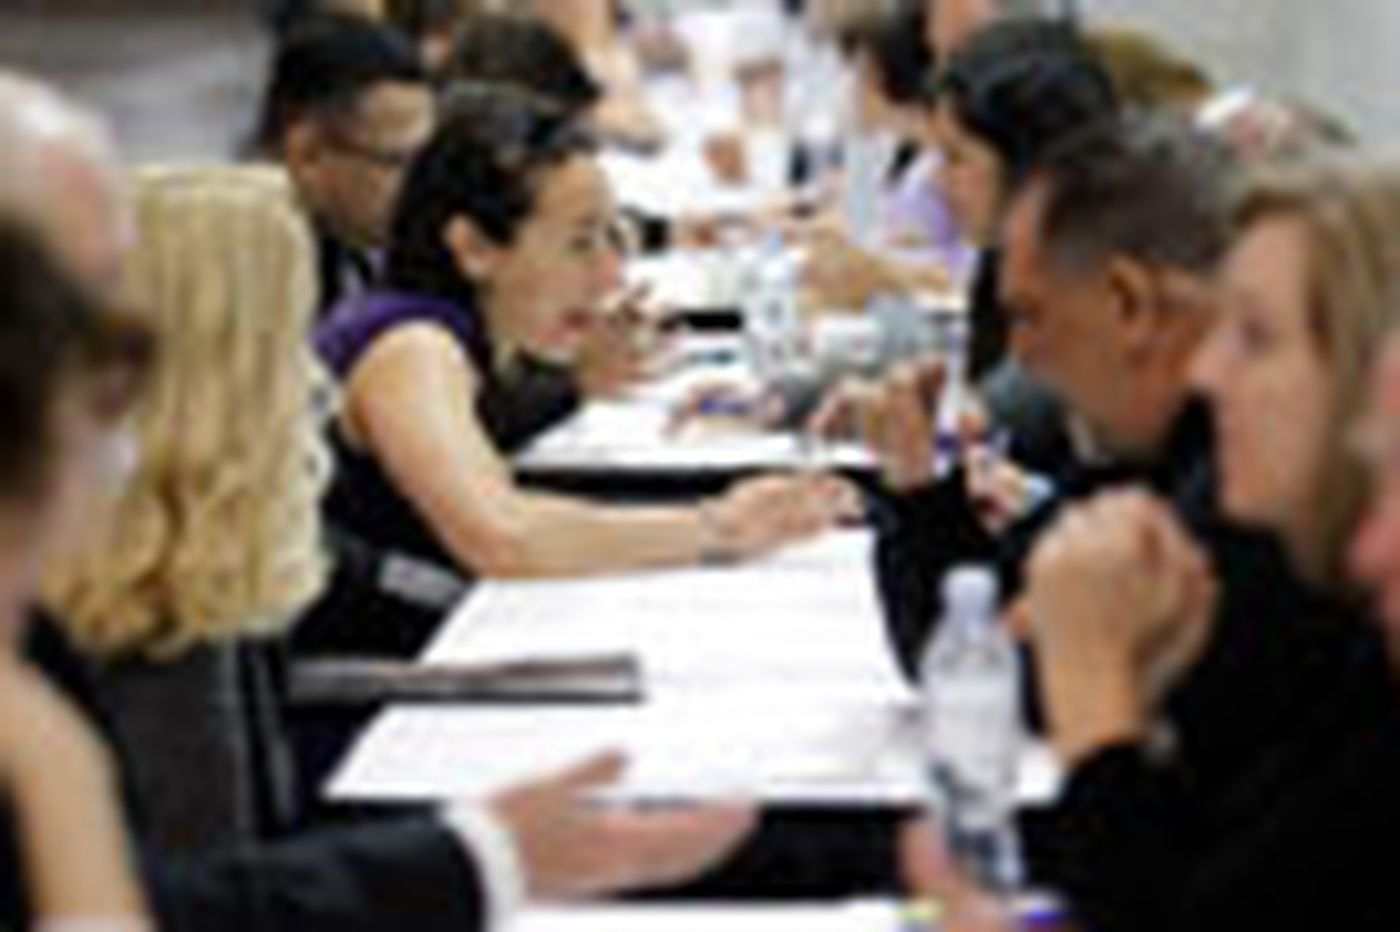 U.S. unemployment rate stays at 8.2 percent